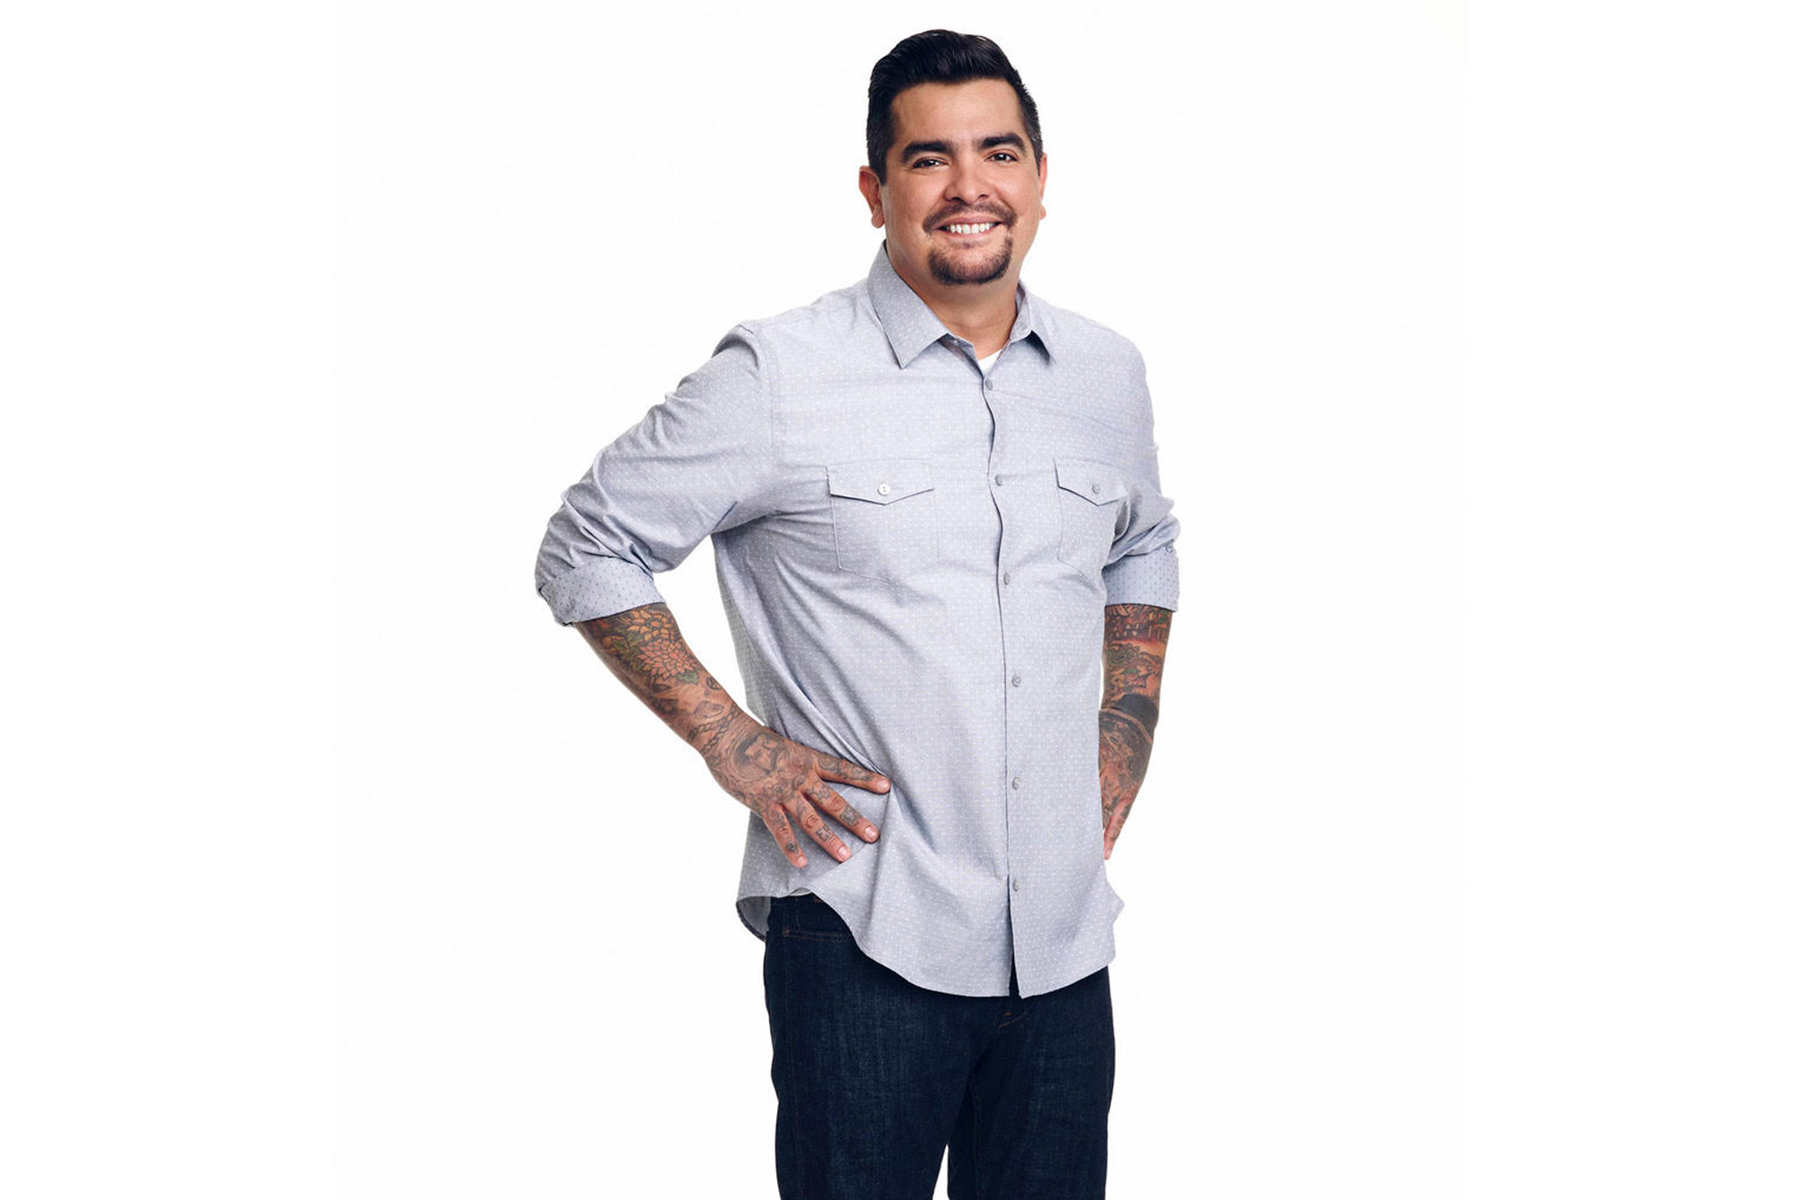 Aarón Sánchez is an award-winning chef, TV personality, cookbook author and philanthropist. He is the chef/owner Johnny Sánchez, located in New Orleans and co-star of FOX's MasterChef and MasterChef Junior. He is a partner/creative director of Cocina, the first online content platform dedicated to celebrating Latin lifestyle through its vibrant culinary culture. One of the world's most distinguished Latin chefs, Aarón is passionate about preserving his family's legacy through food and encouraging diversity in the kitchen. -